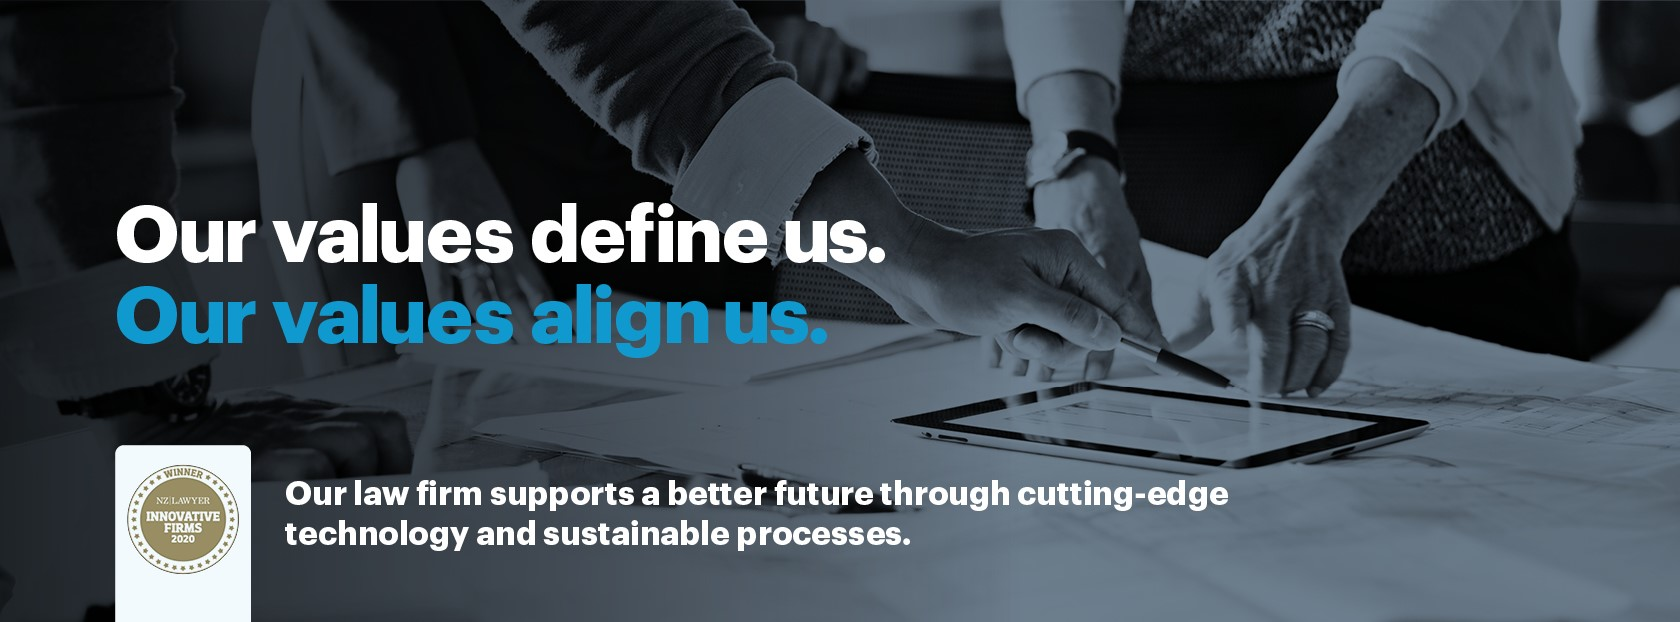 Our law firm supports a better future through cutting-edge technology and sustainable processes